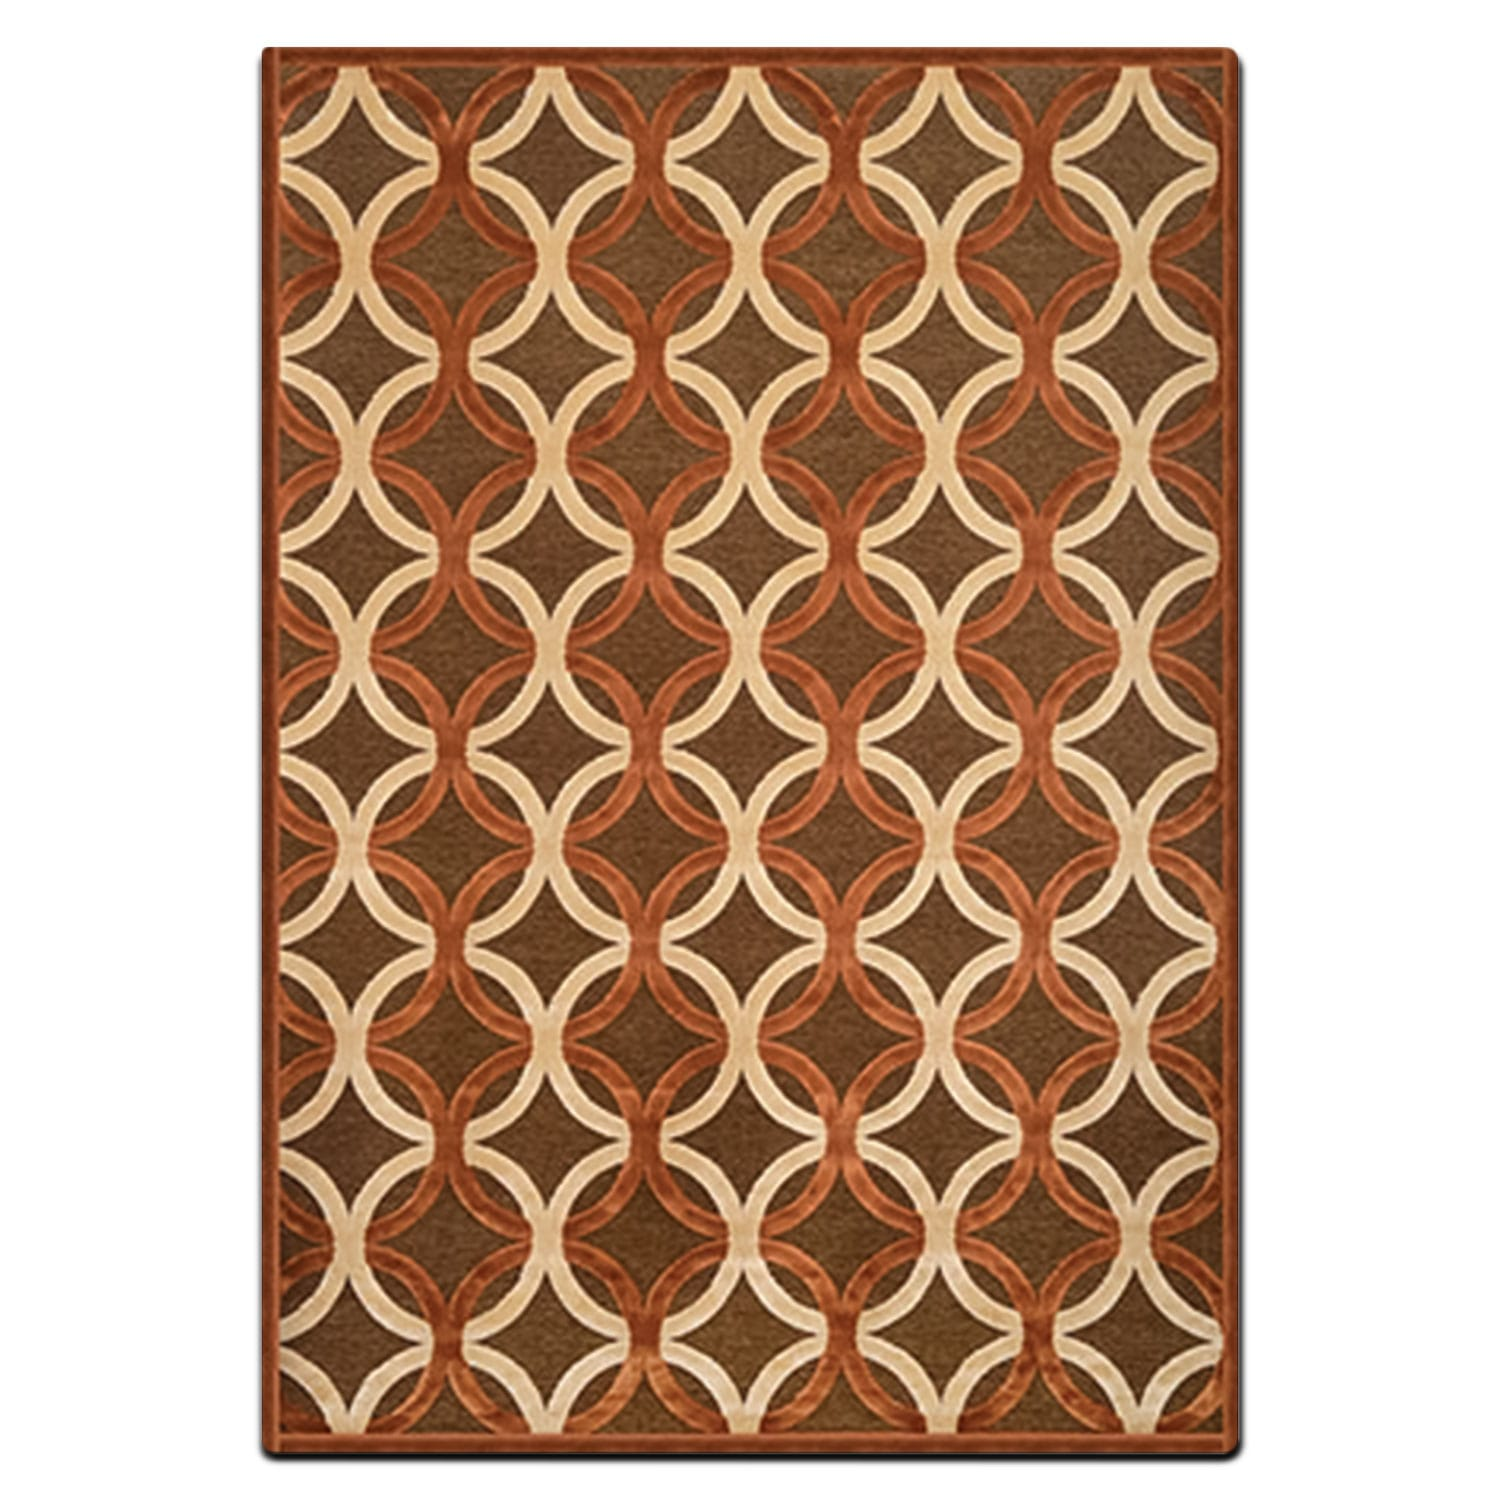 Rugs - Napa 5' x 8' Area Rug - Rust and Ivory